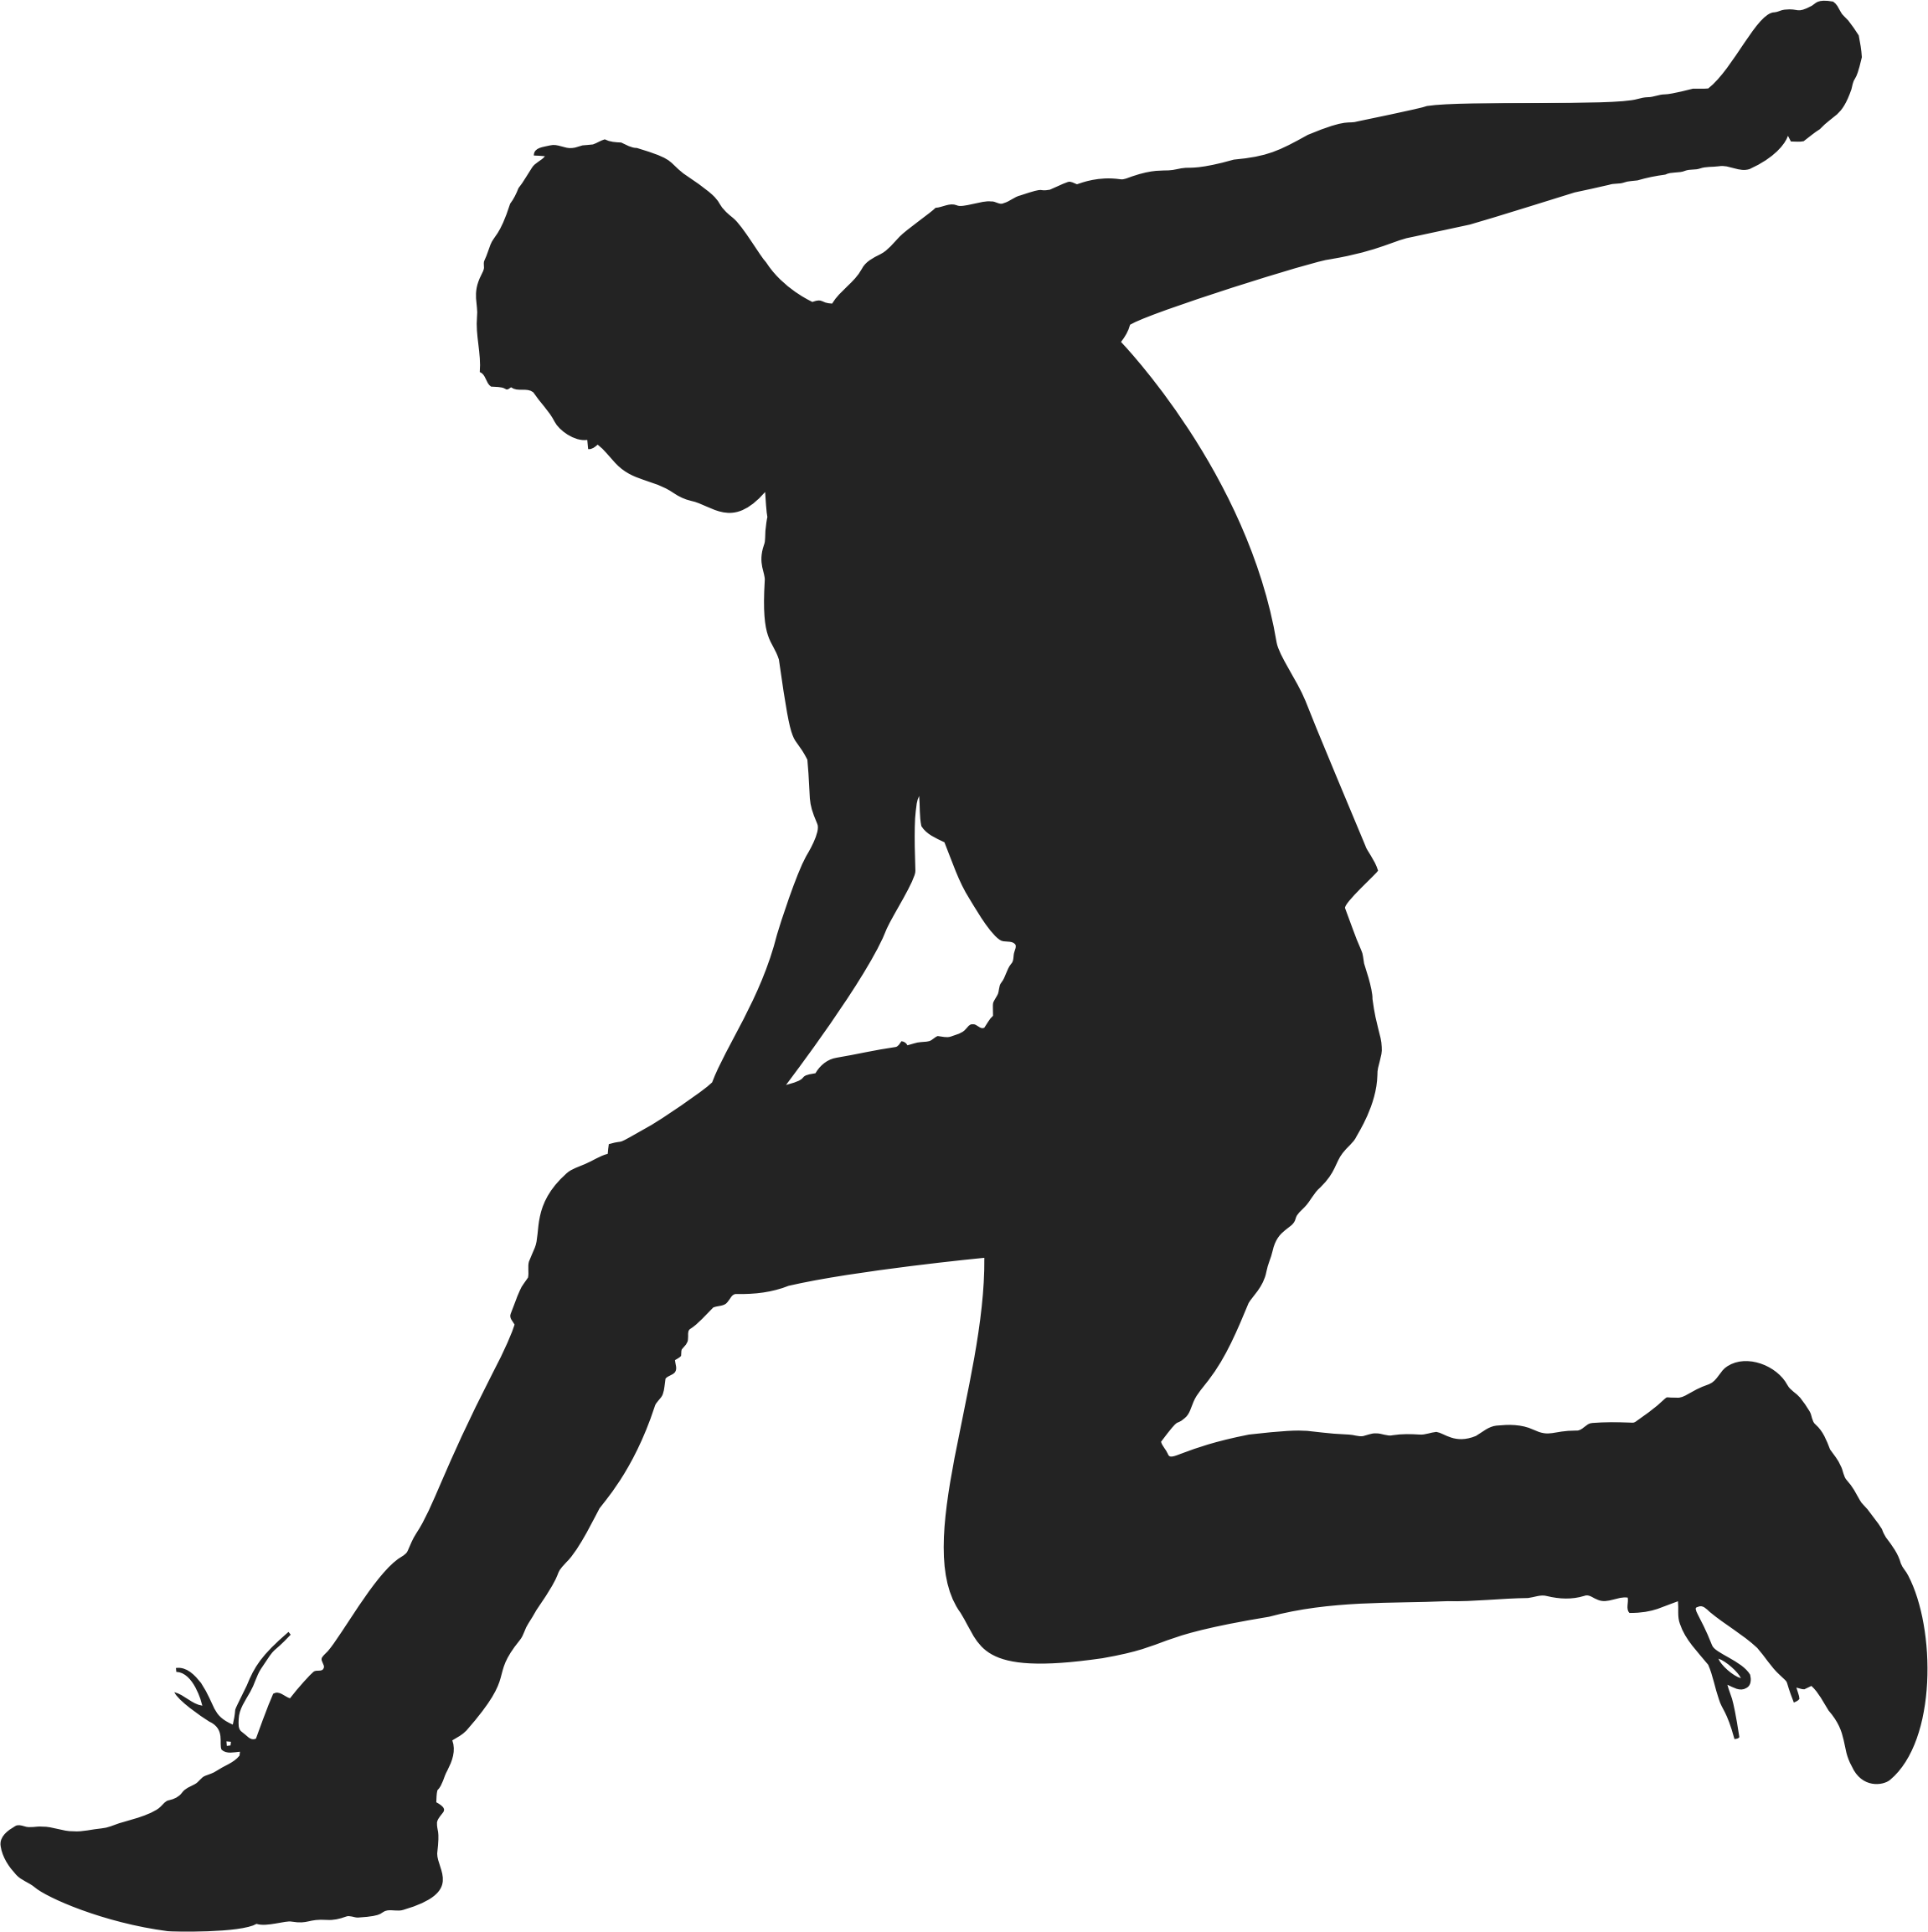 Jumping clipart athletic person. Man silhouette big image